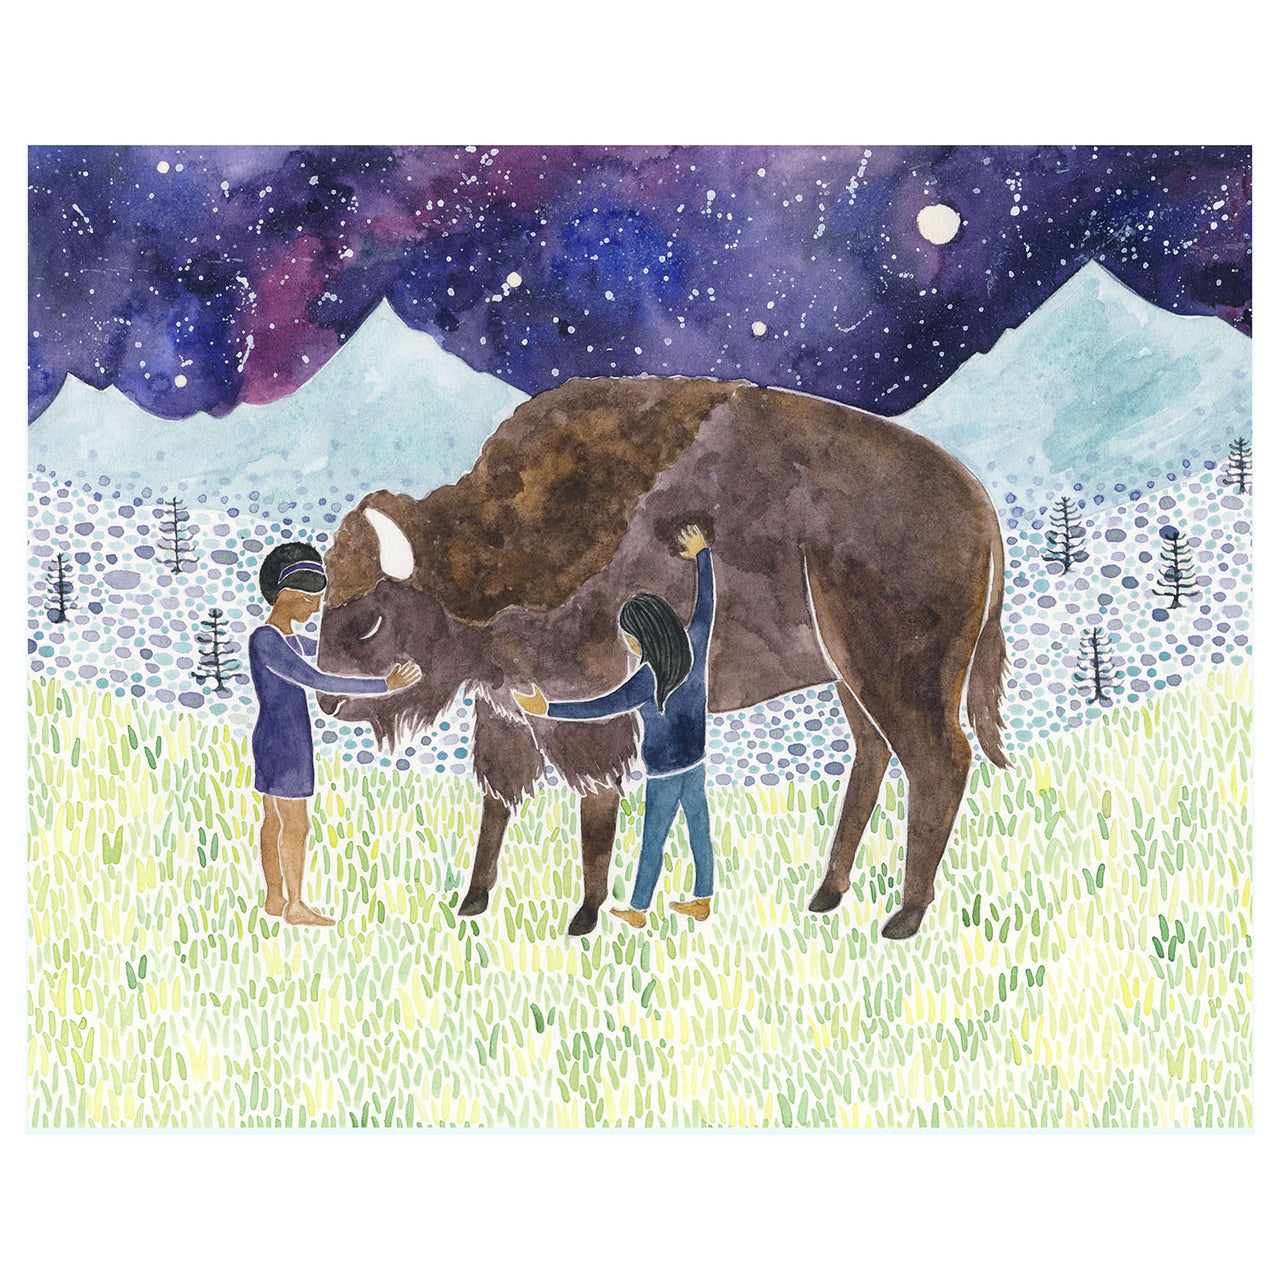 girls hugging bison original watercolor painting by Yardia